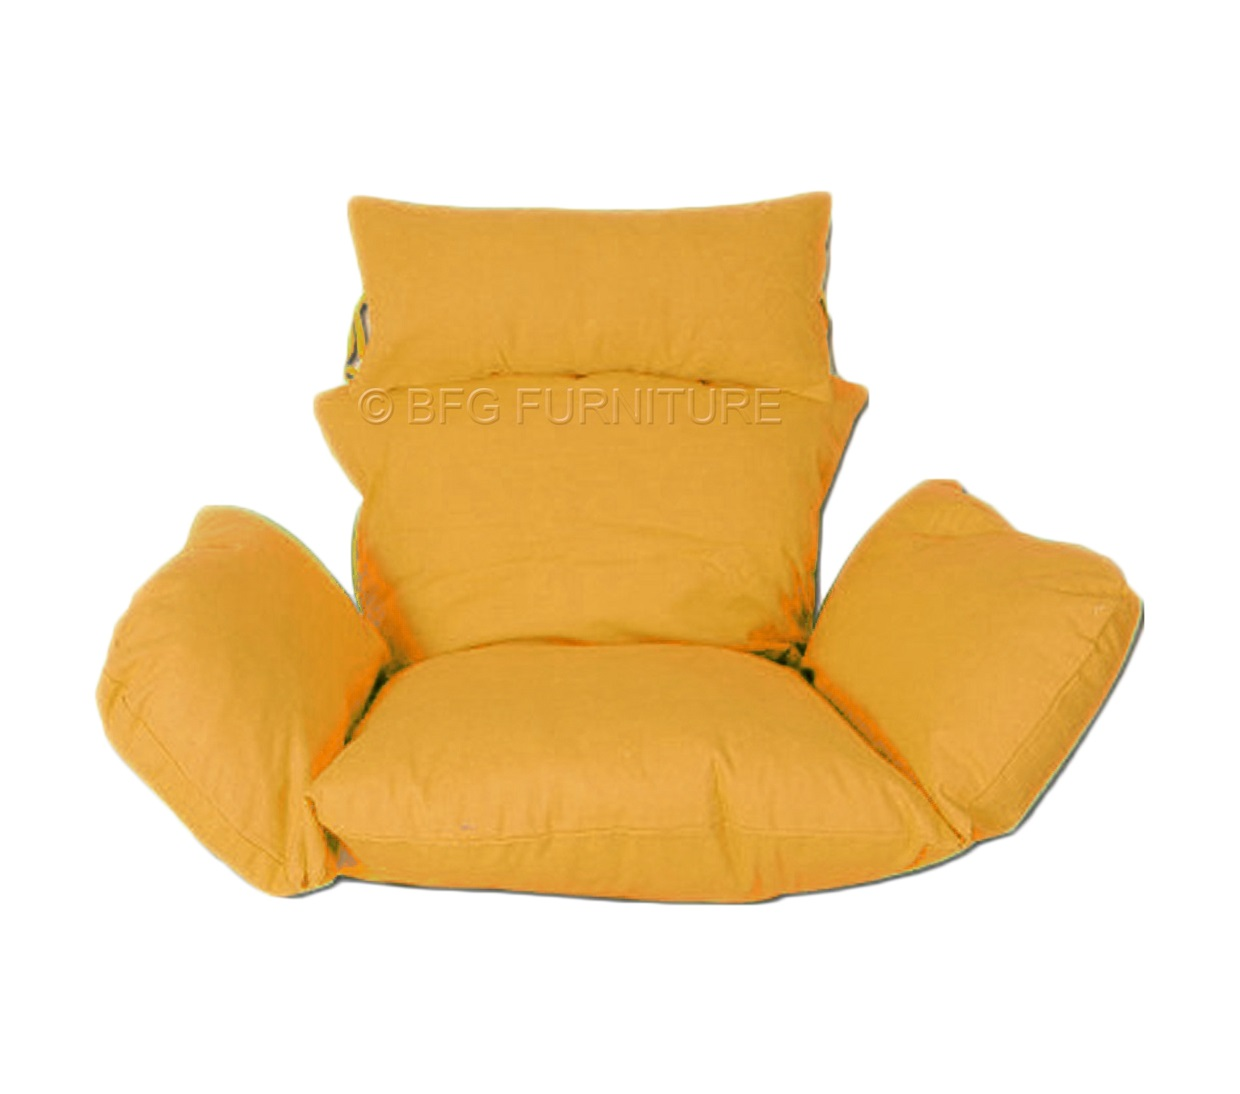 mustard yellow bean bag chair resistance exercise system reviews classic cushions outdoor furniture bfg